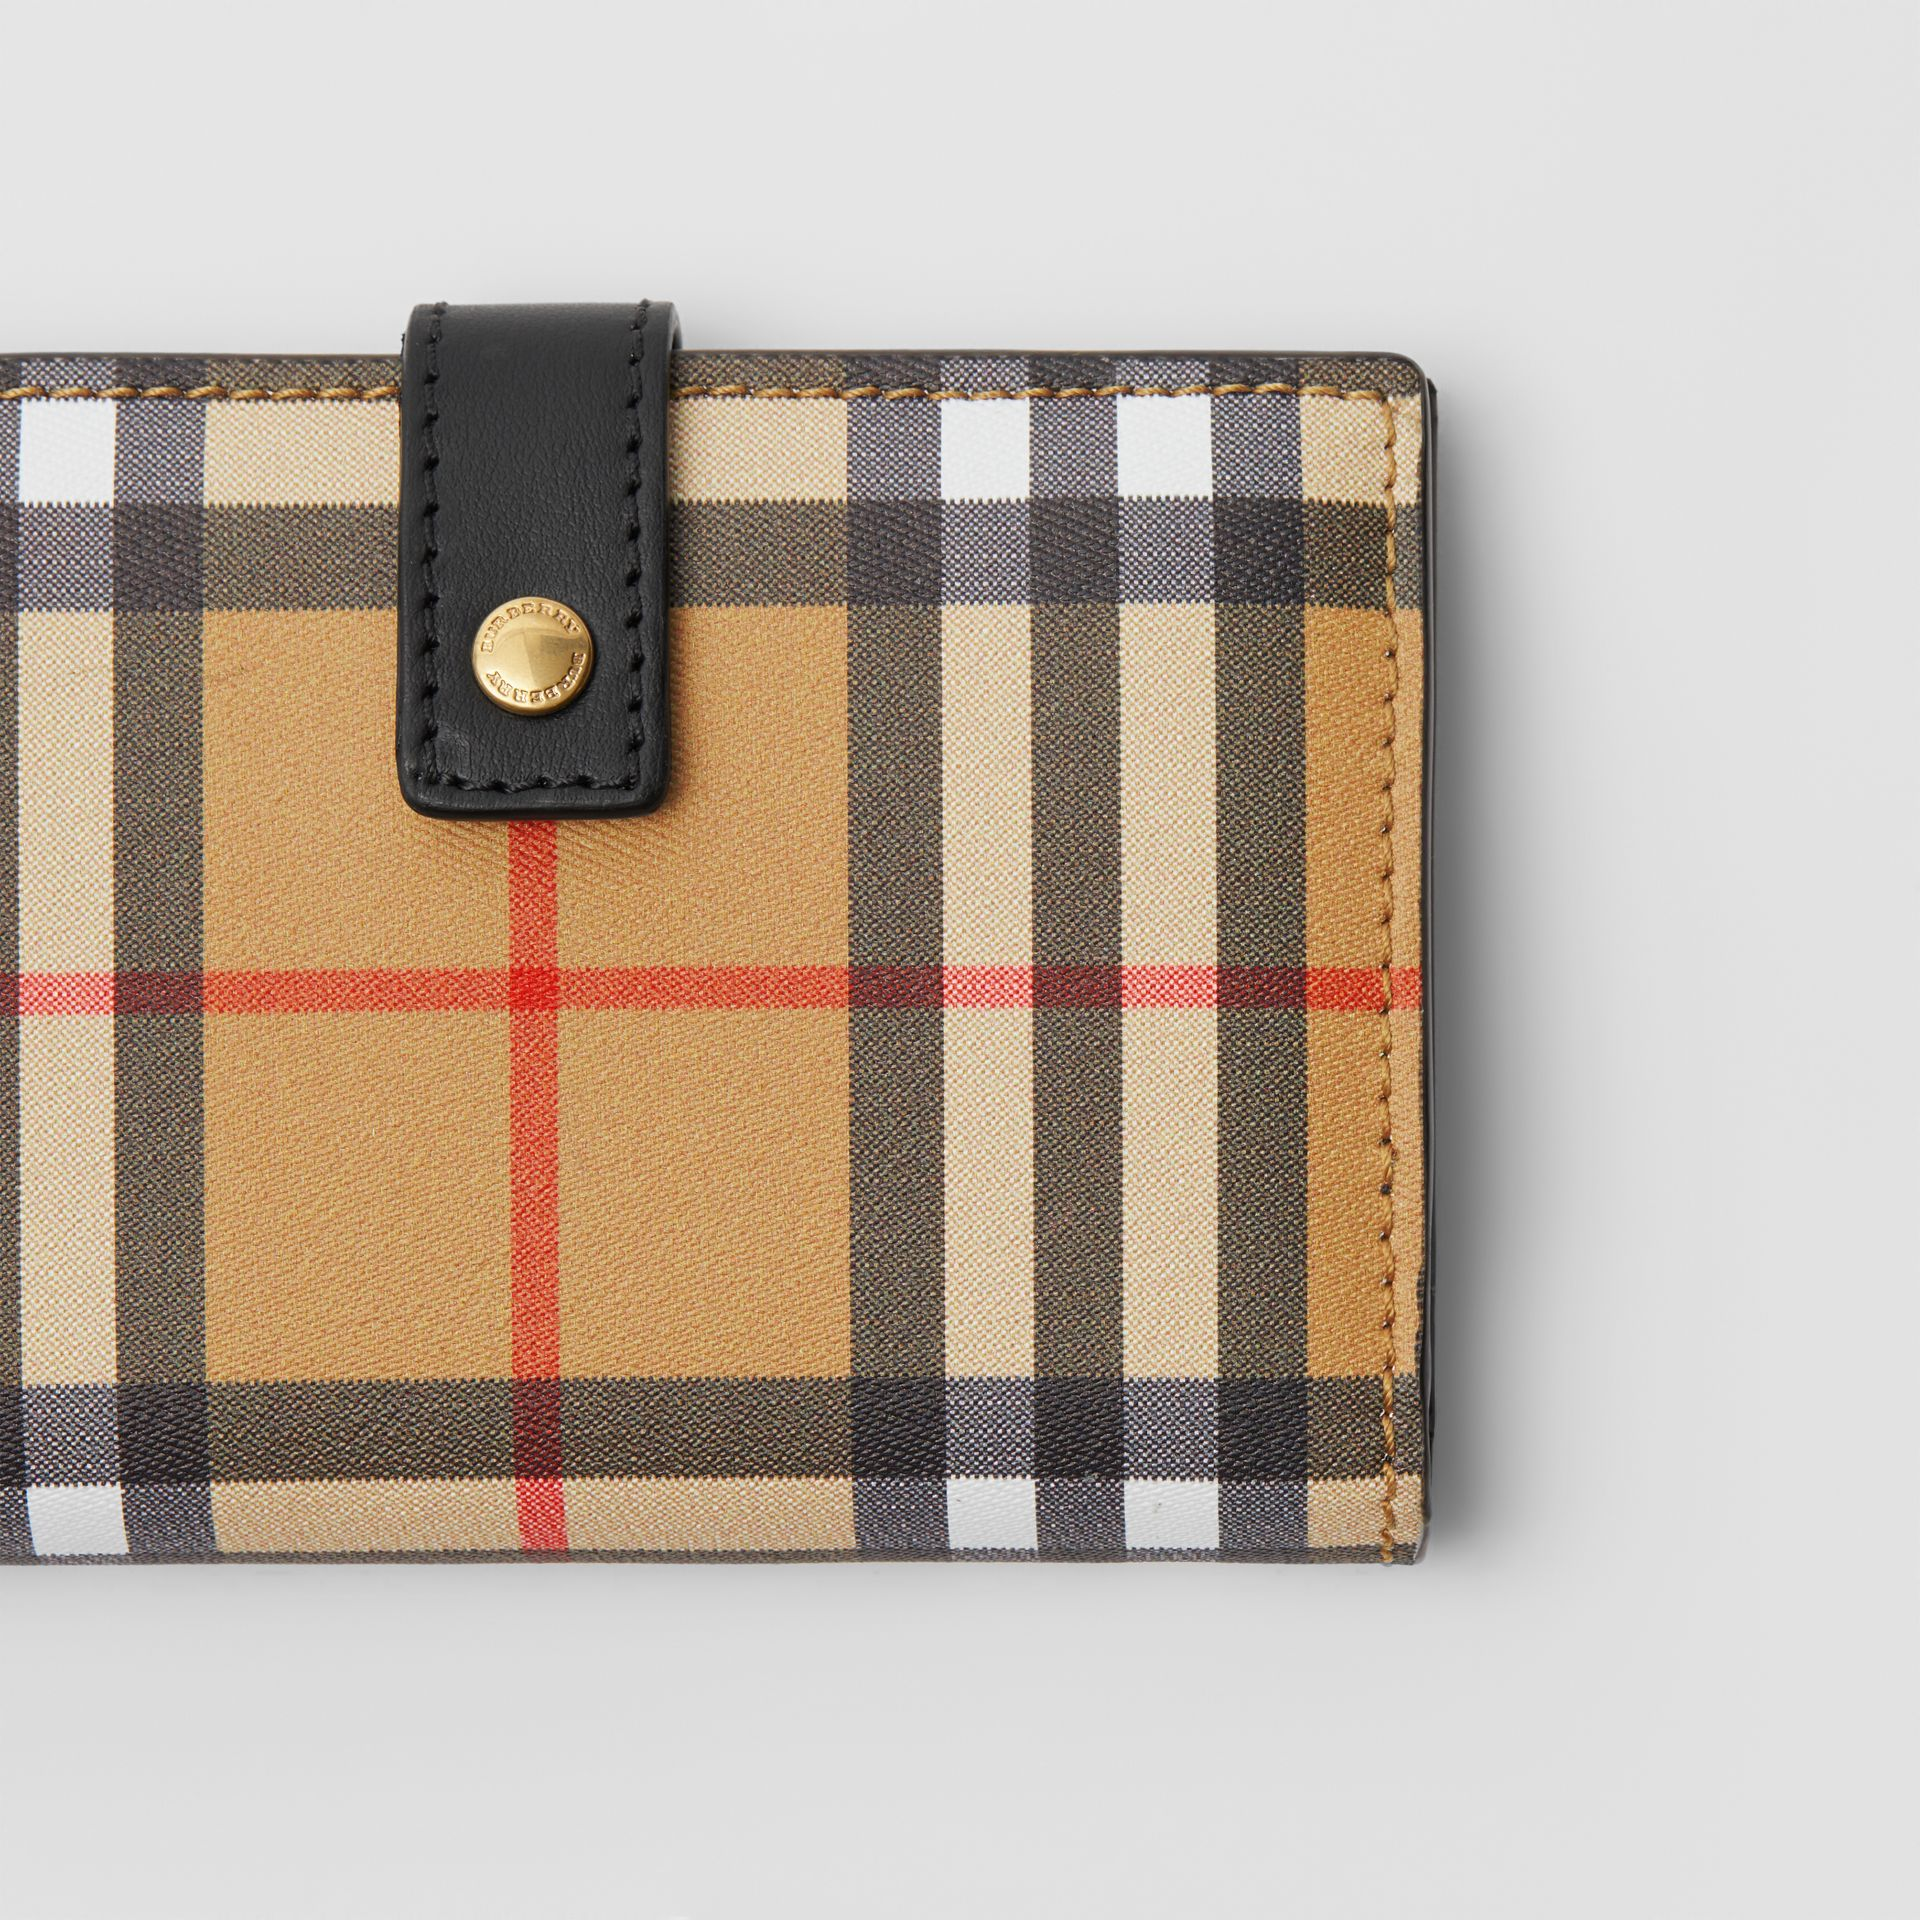 Vintage Check and Leather Folding Wallet in Black - Women | Burberry - gallery image 1